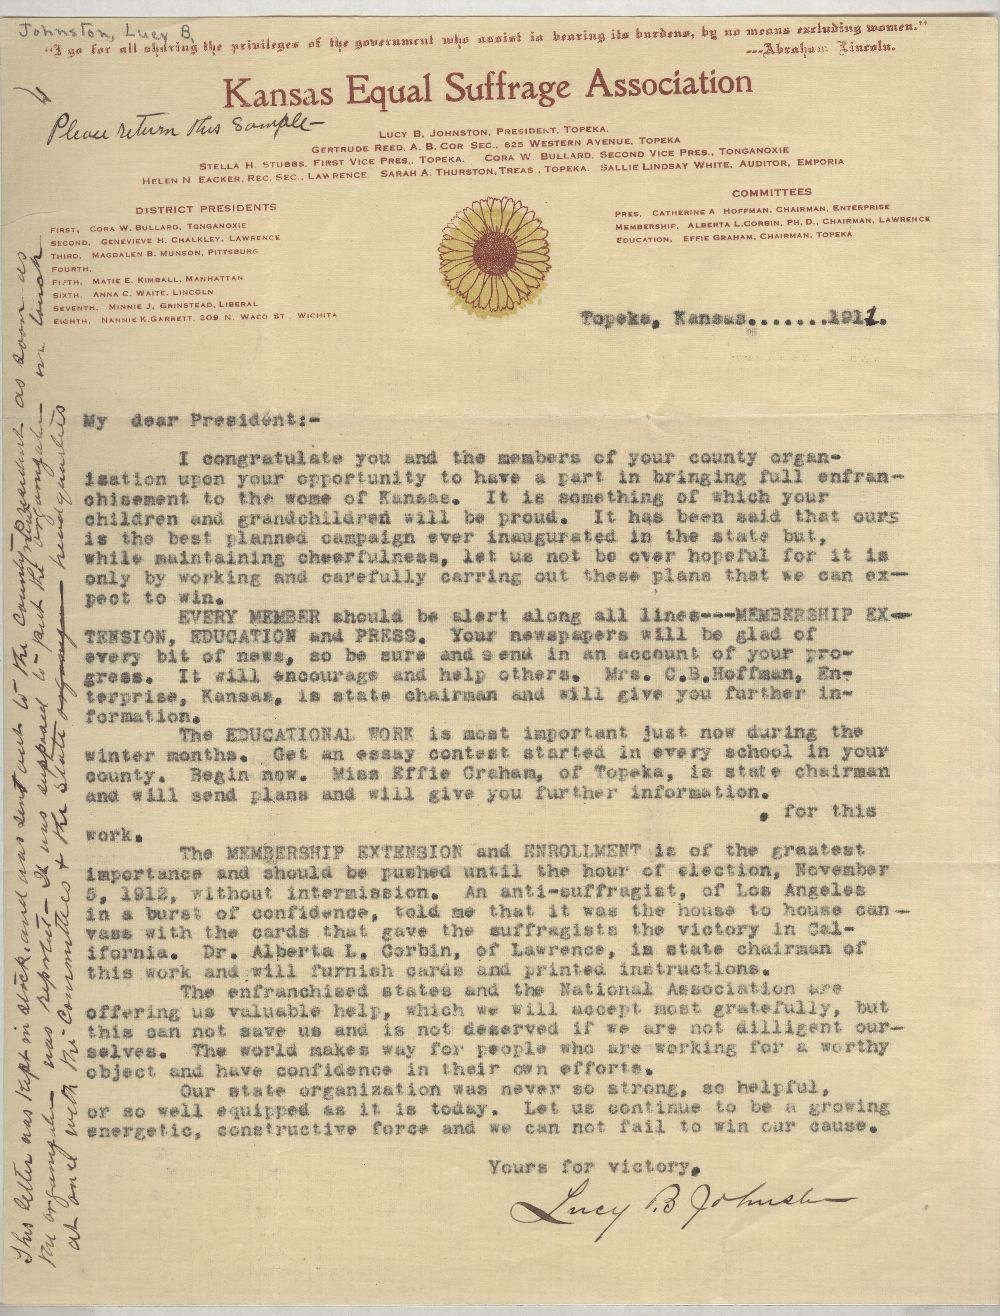 Lucy B. Johnston to County Presidents of the Kansas Equal Suffrage Association